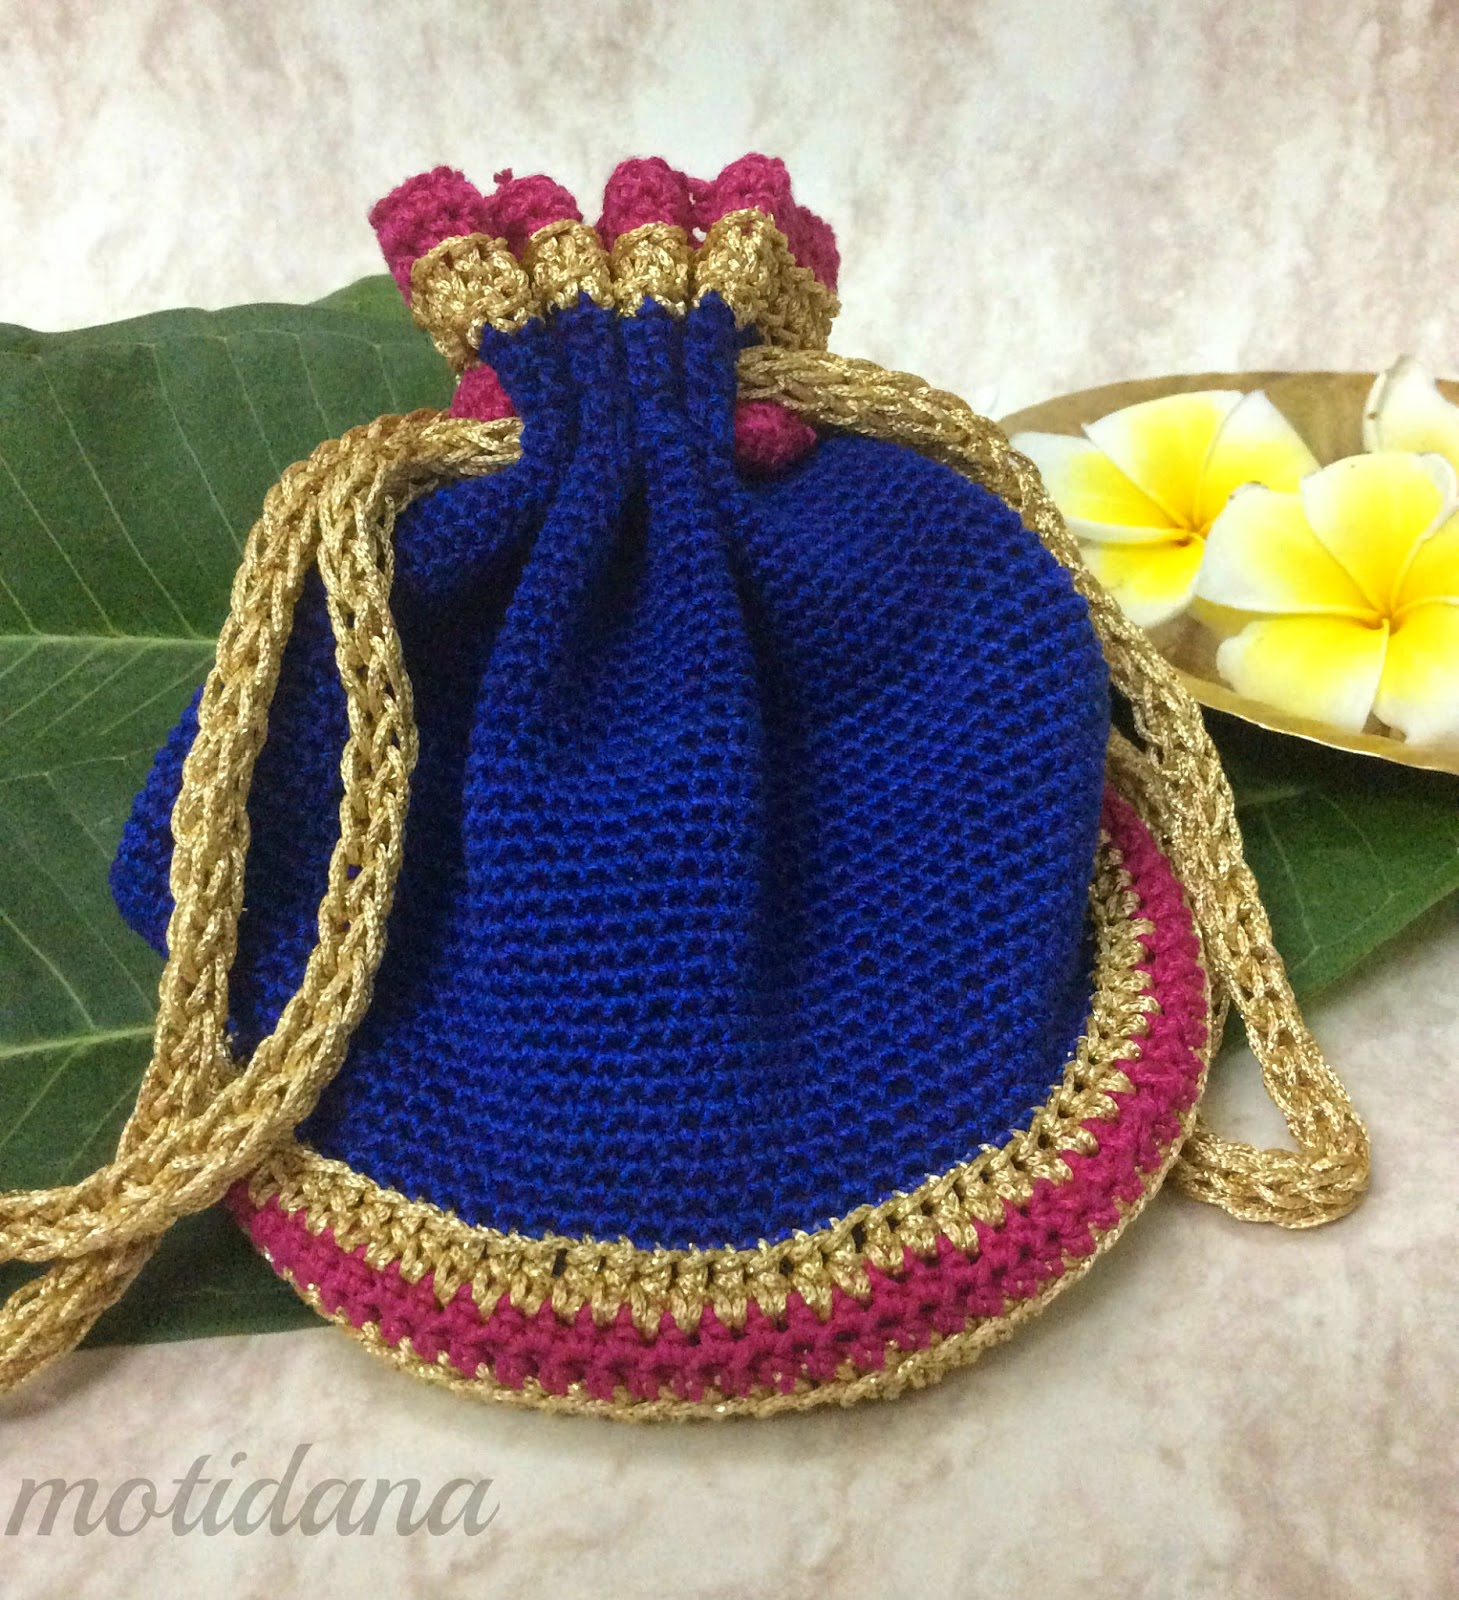 crochet wedding accessory